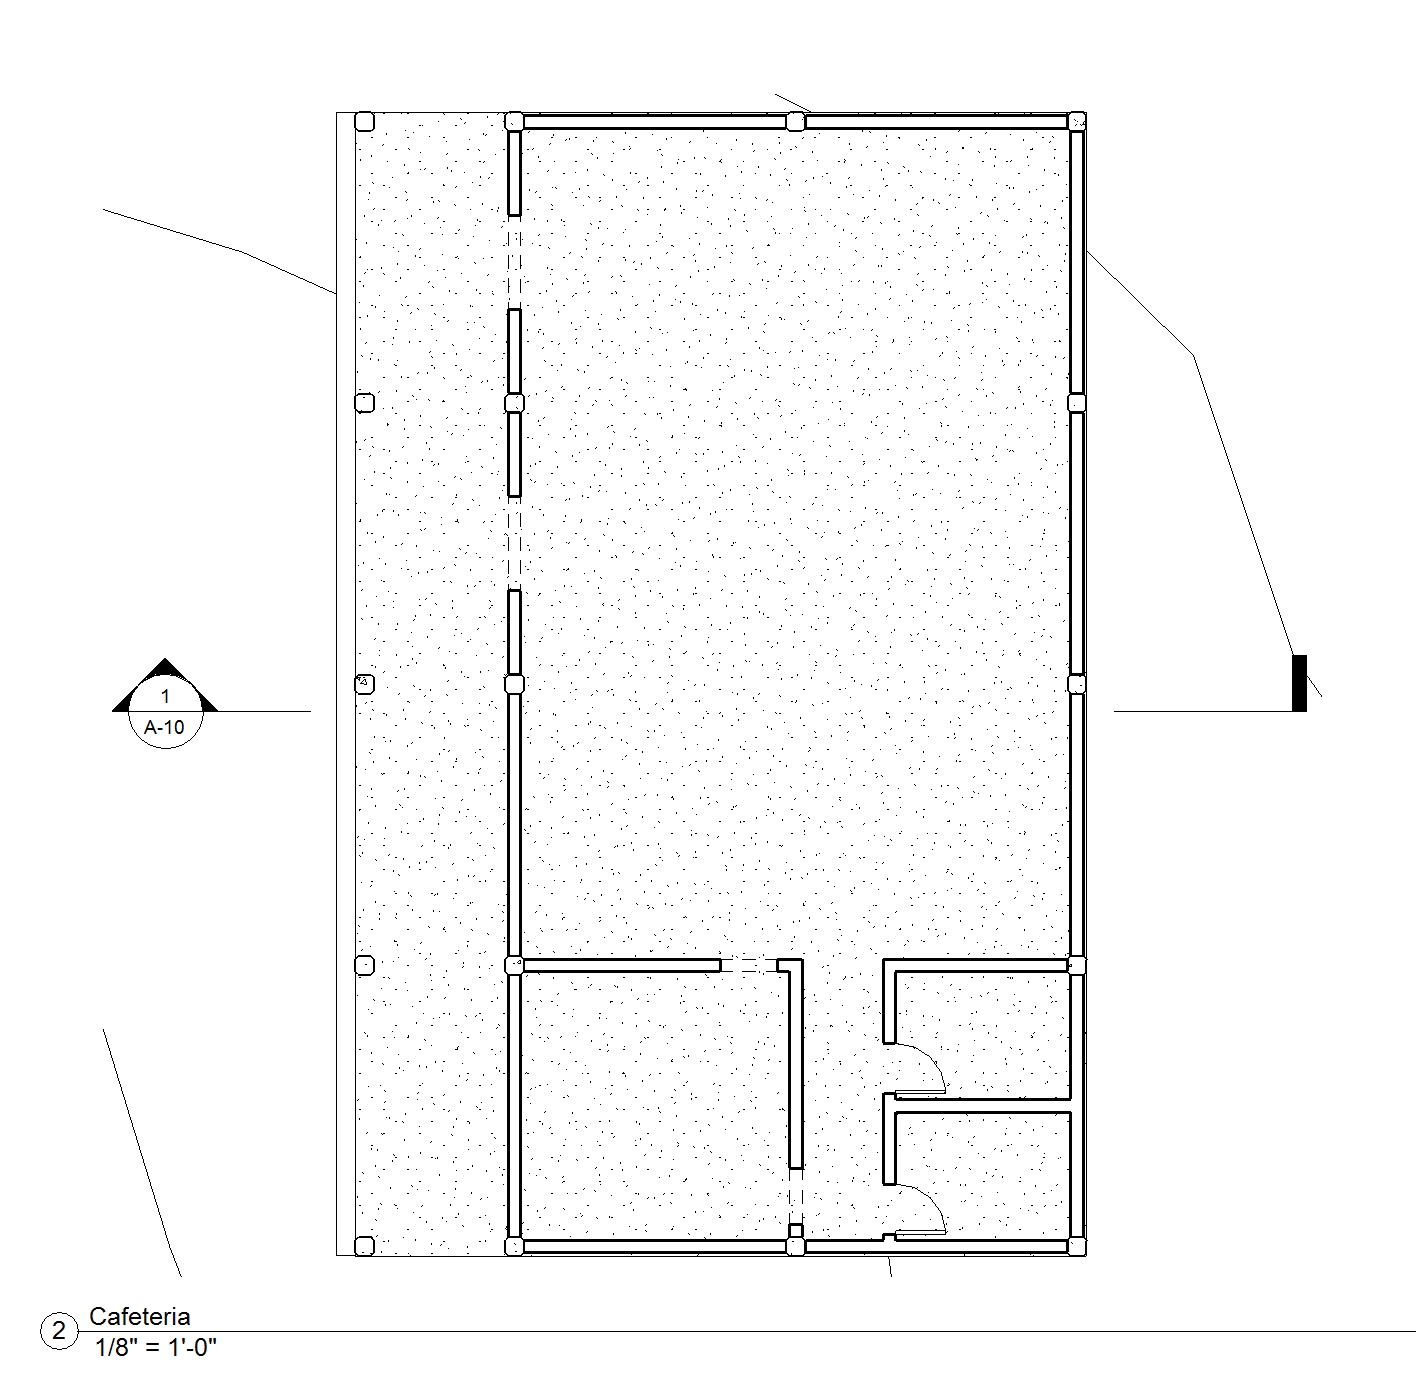 into the banana tree cafeteria cafeteria floor plans submited images